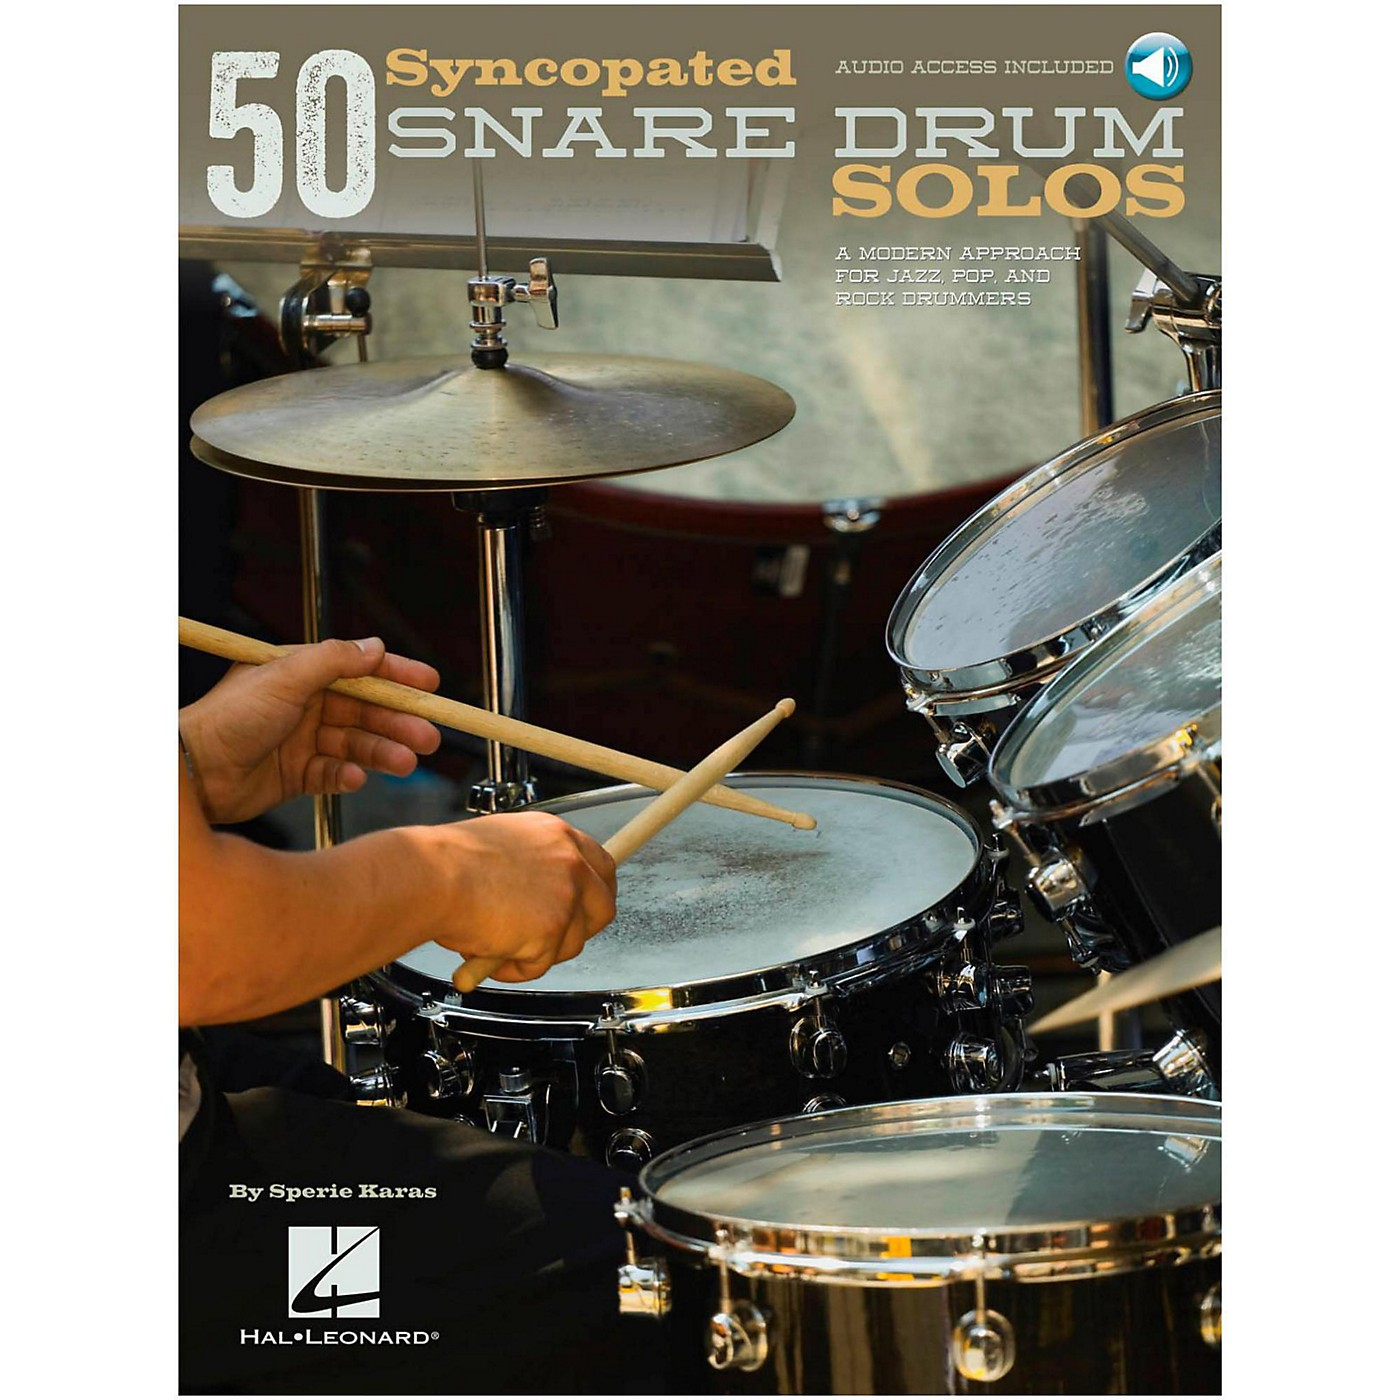 Hal Leonard 50 Syncopated Snare Drum Solos - A Modern Approach For Jazz, Pop & Rock Drummers Book/Online Audio thumbnail